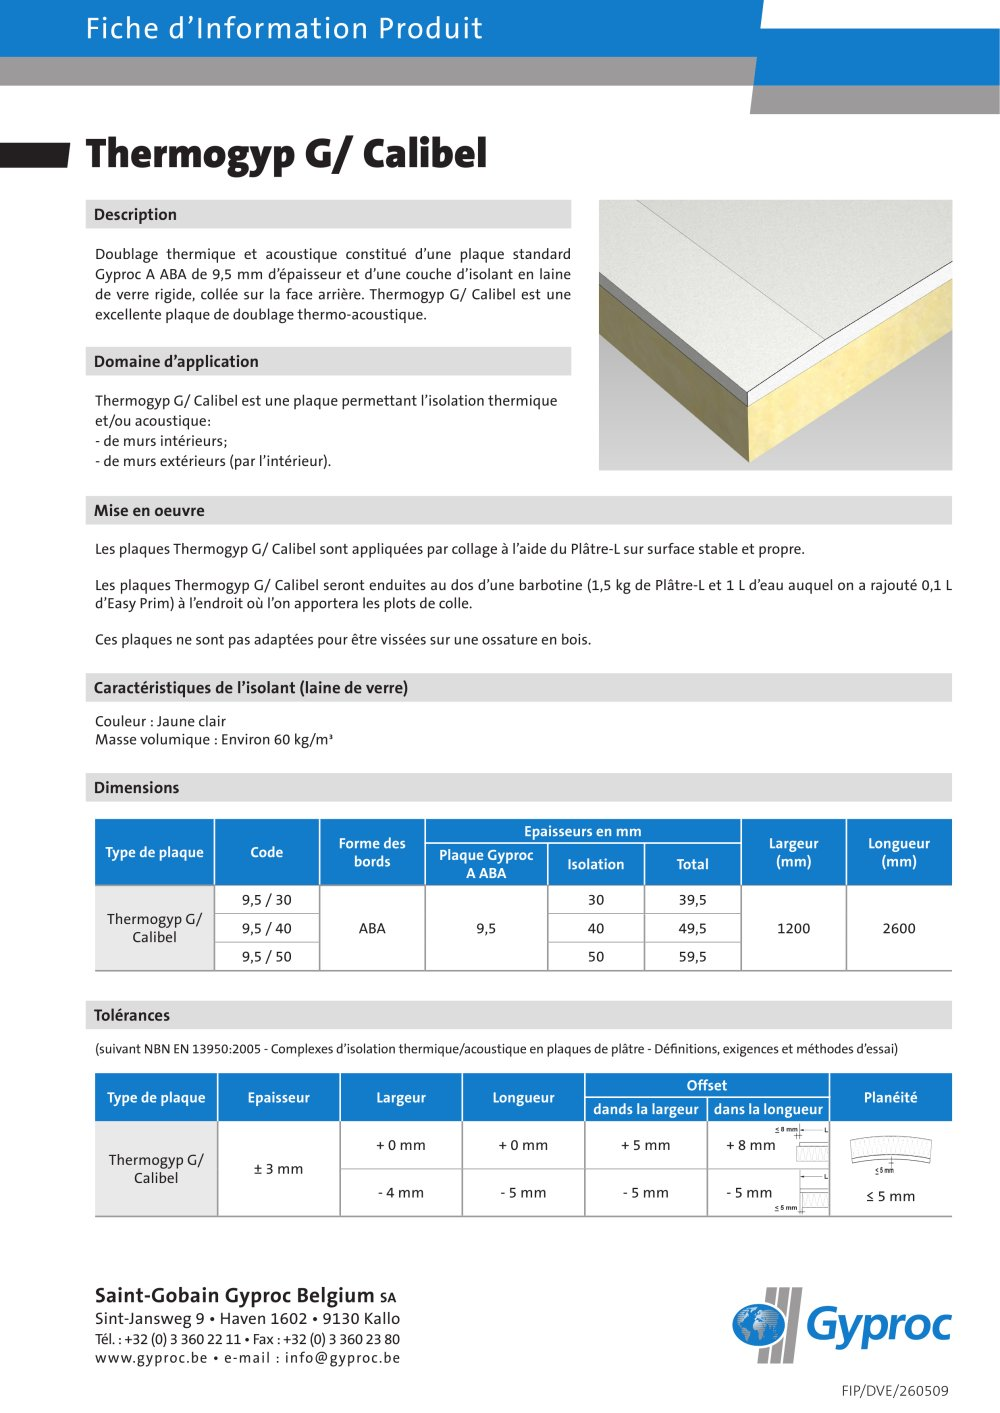 Masse Volumique Laine De Bois dedans thermogyp g/ calibel - british gypsum limited - catalogue pdf